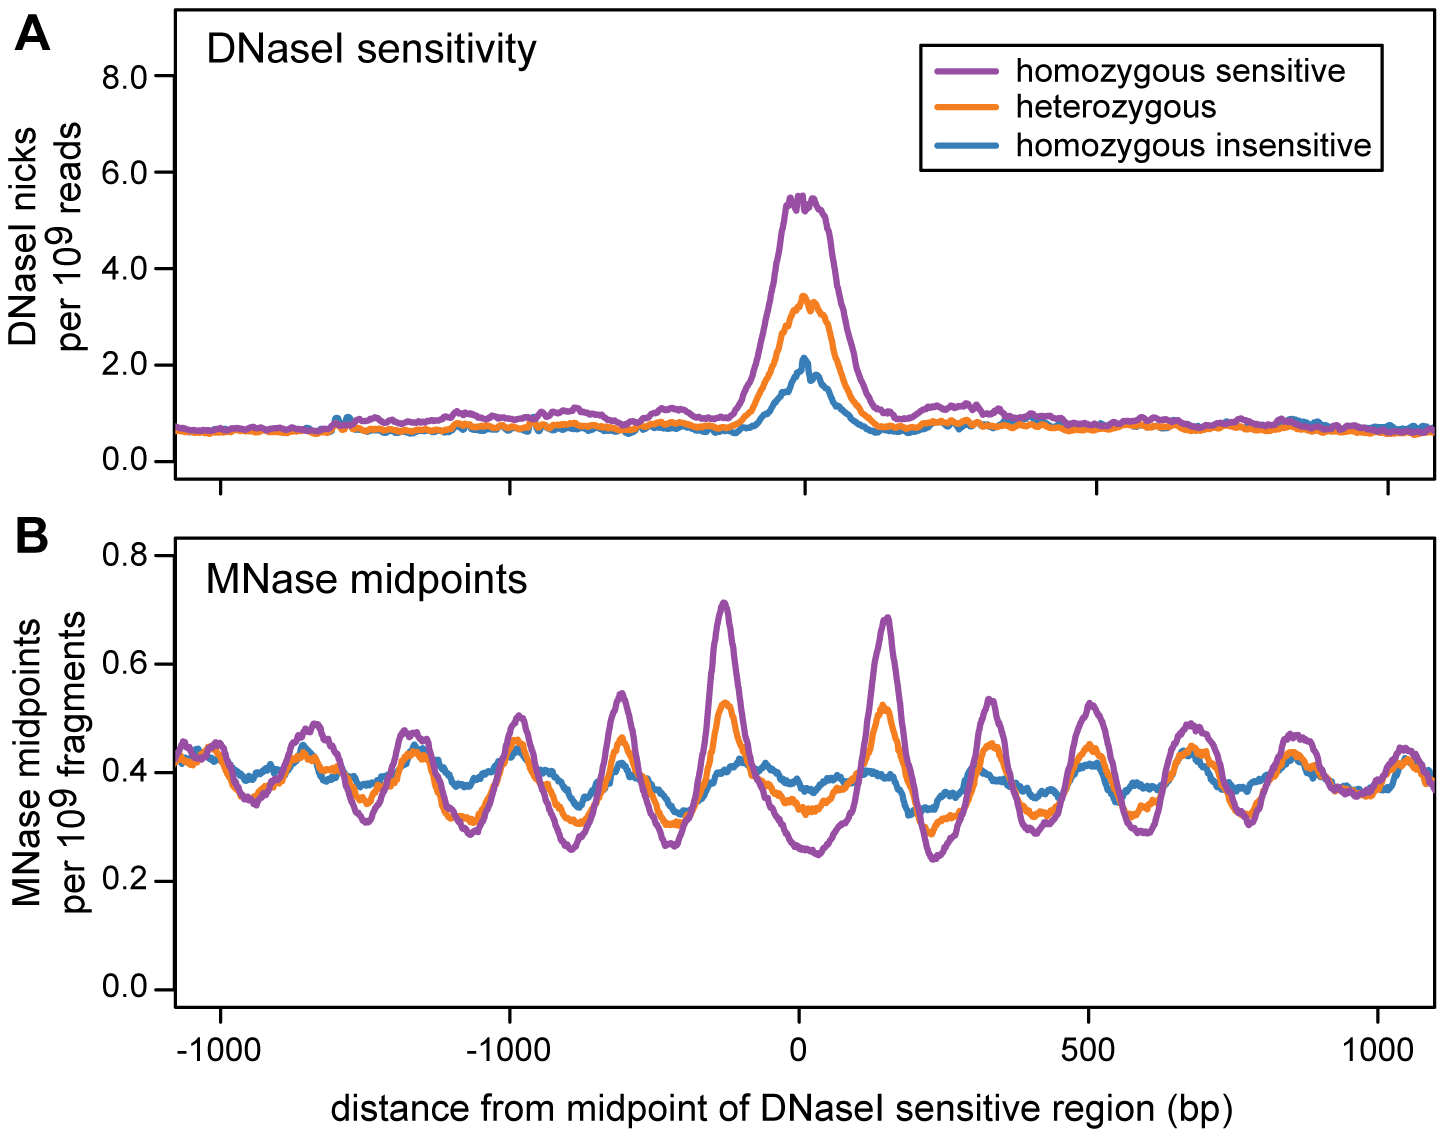 Nucleosome organization in regions with an association between DNase I sensitivity and genotype (dsQTLs).